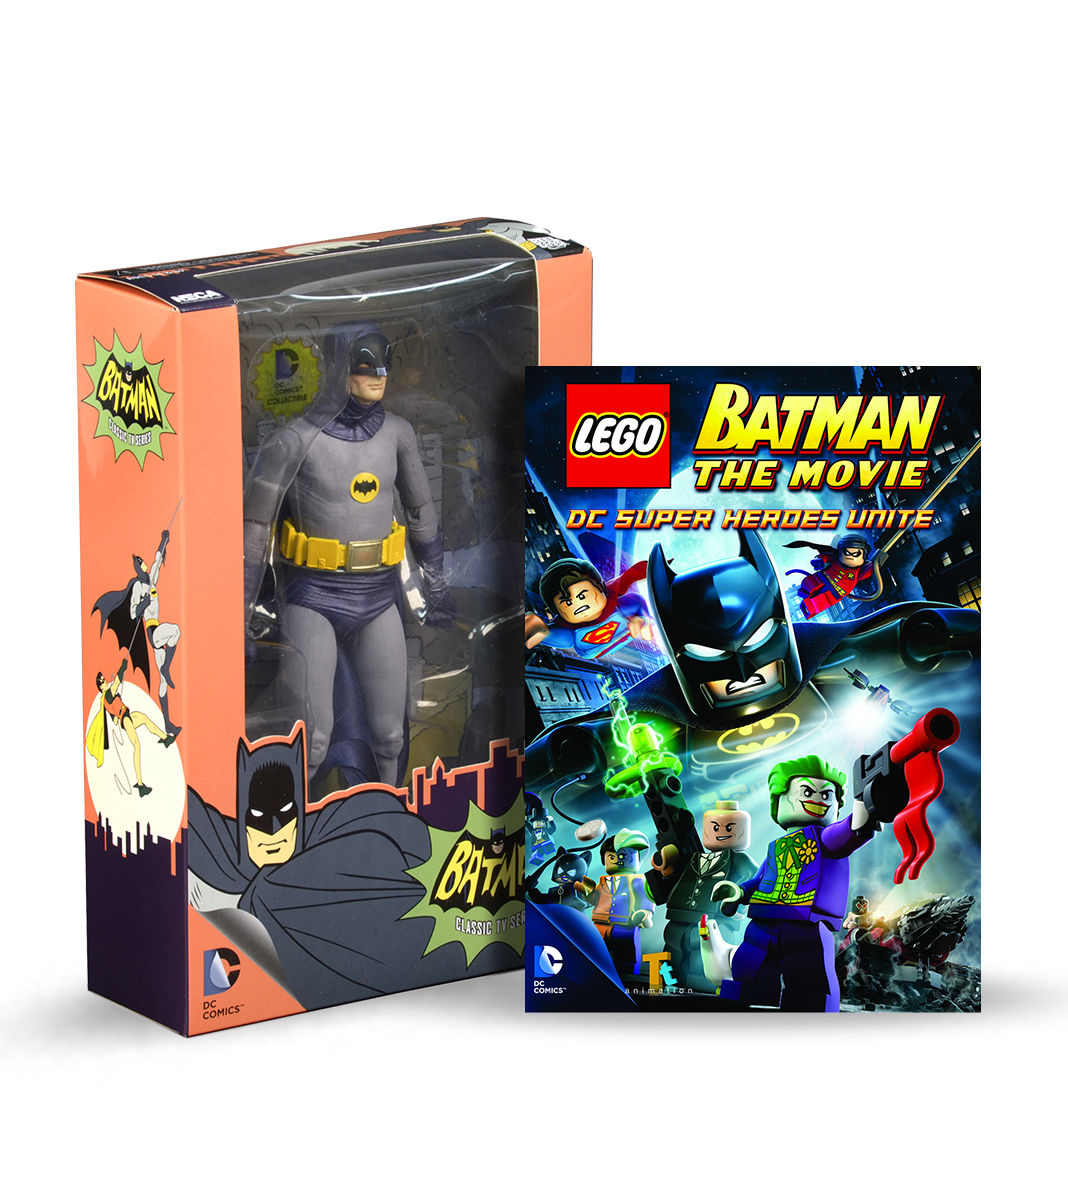 NECA And The WB Team Up To Bring New 7″ Scale DC Movie Figures